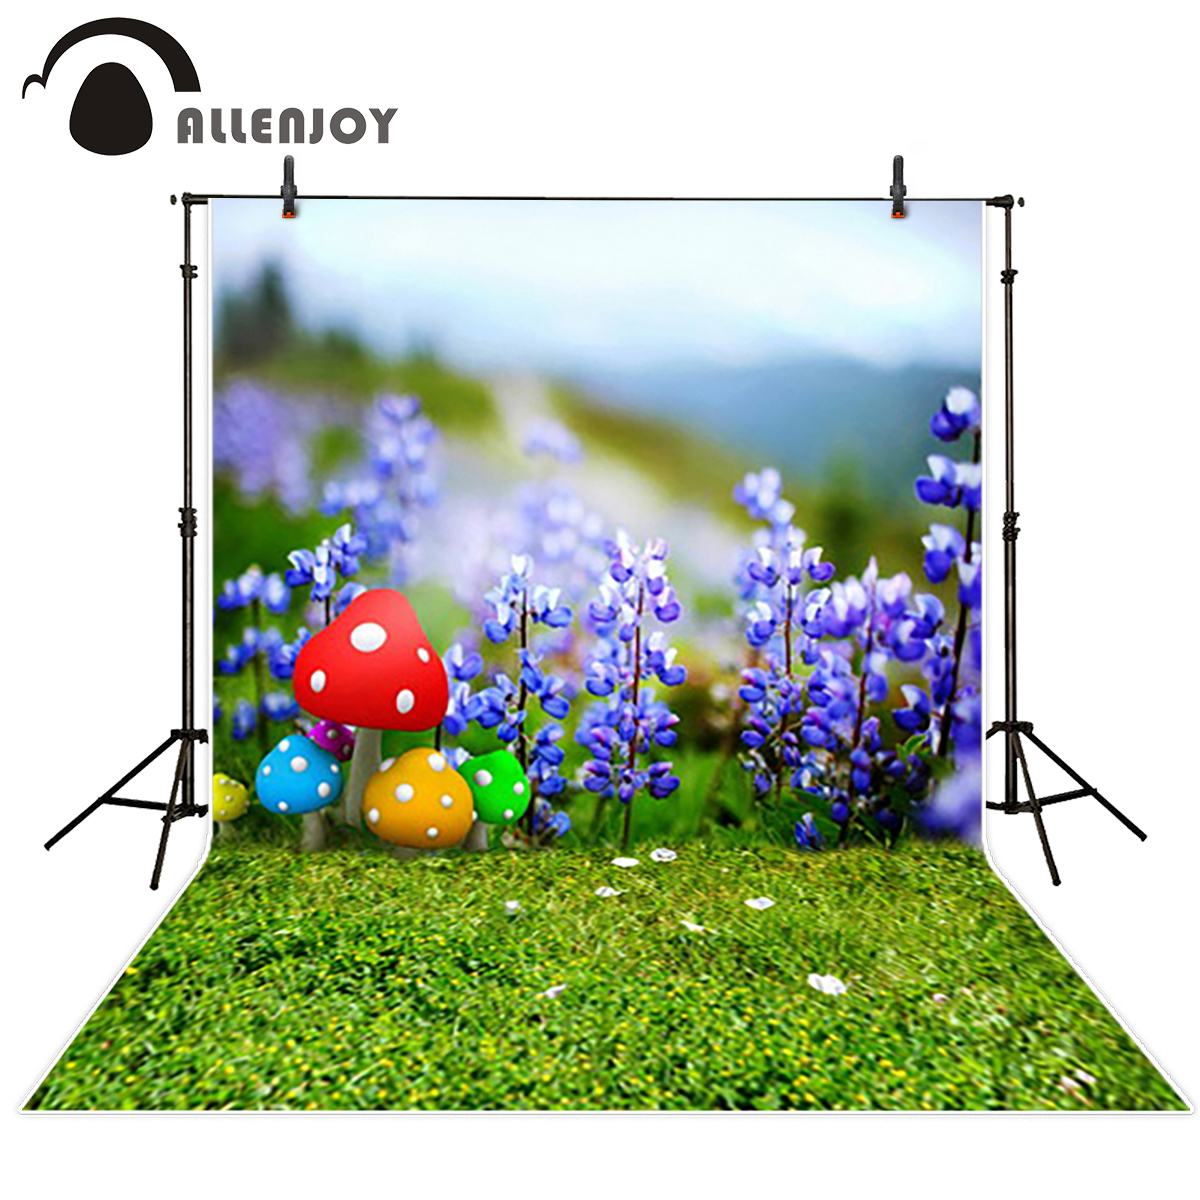 Allenjoy vinyl backdrops for photography backdrop Grassland Purple mushroom Beautiful Background for photo fond studio photo трусы 2 шт quelle infinity kids 1005265